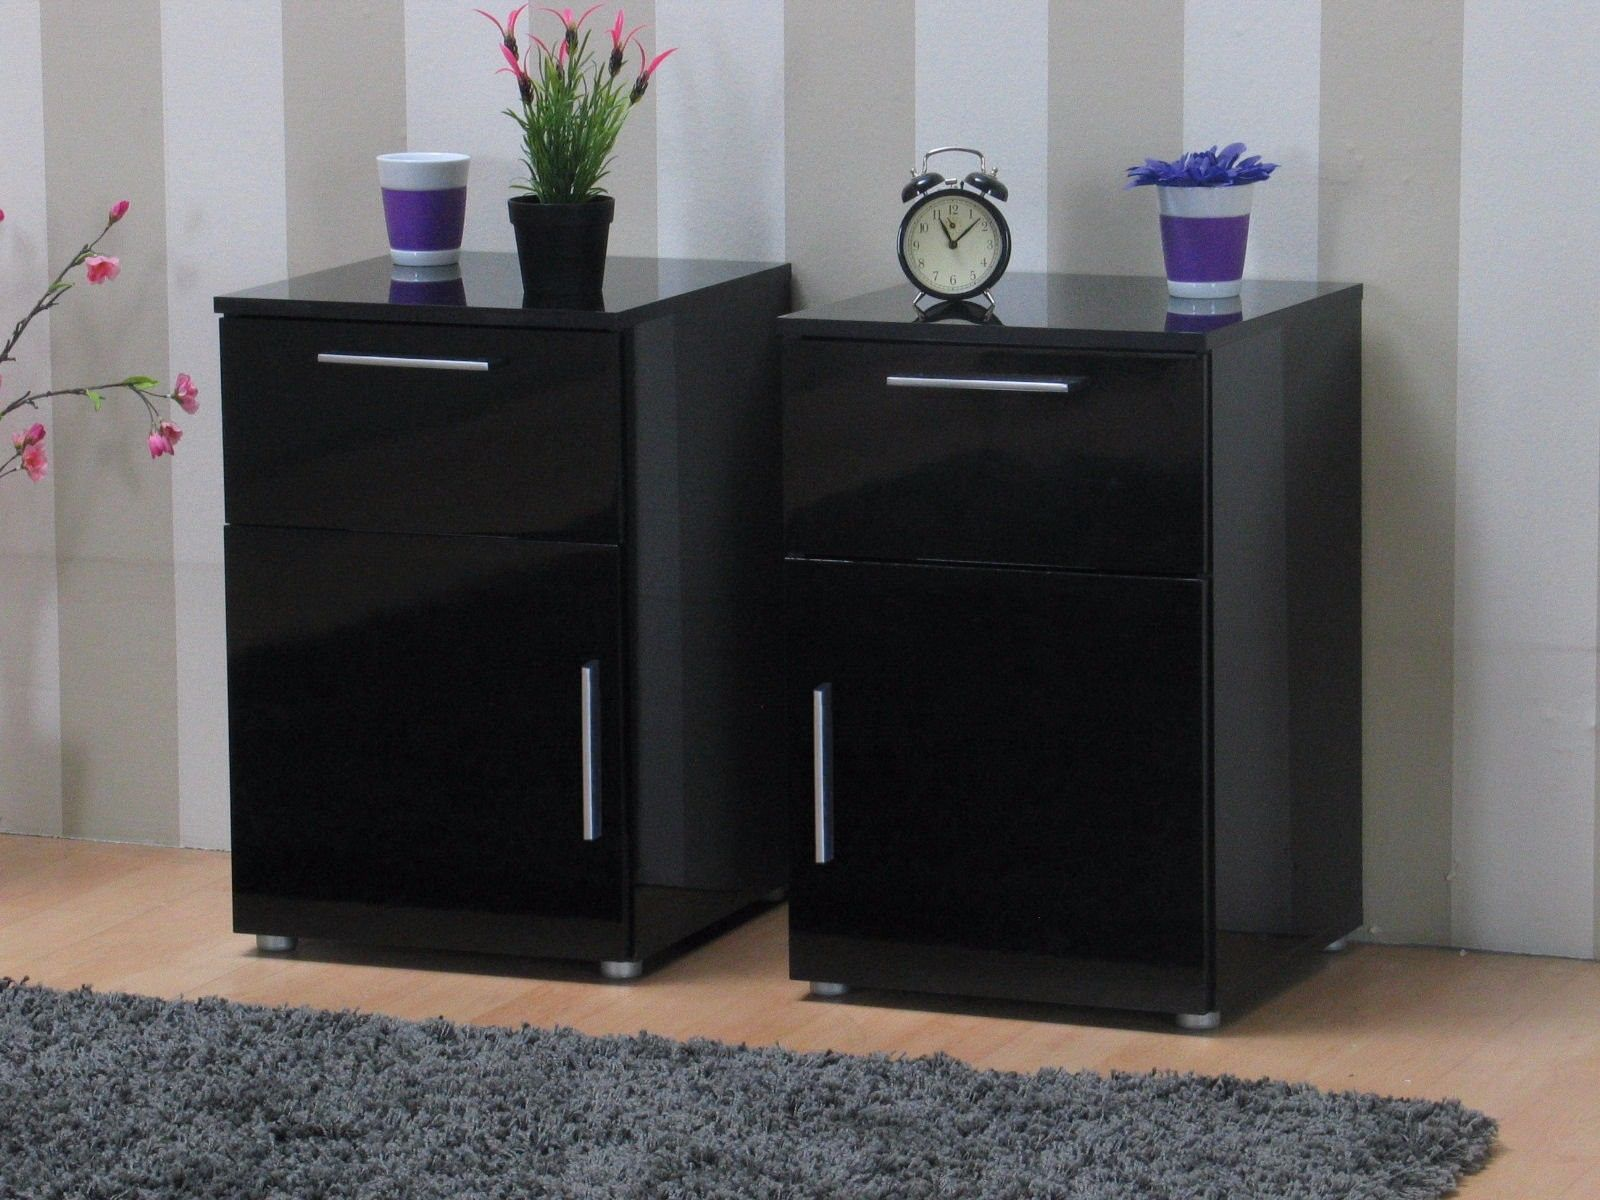 2x nachttisch infiniti nachtschrank nachtkonsole. Black Bedroom Furniture Sets. Home Design Ideas